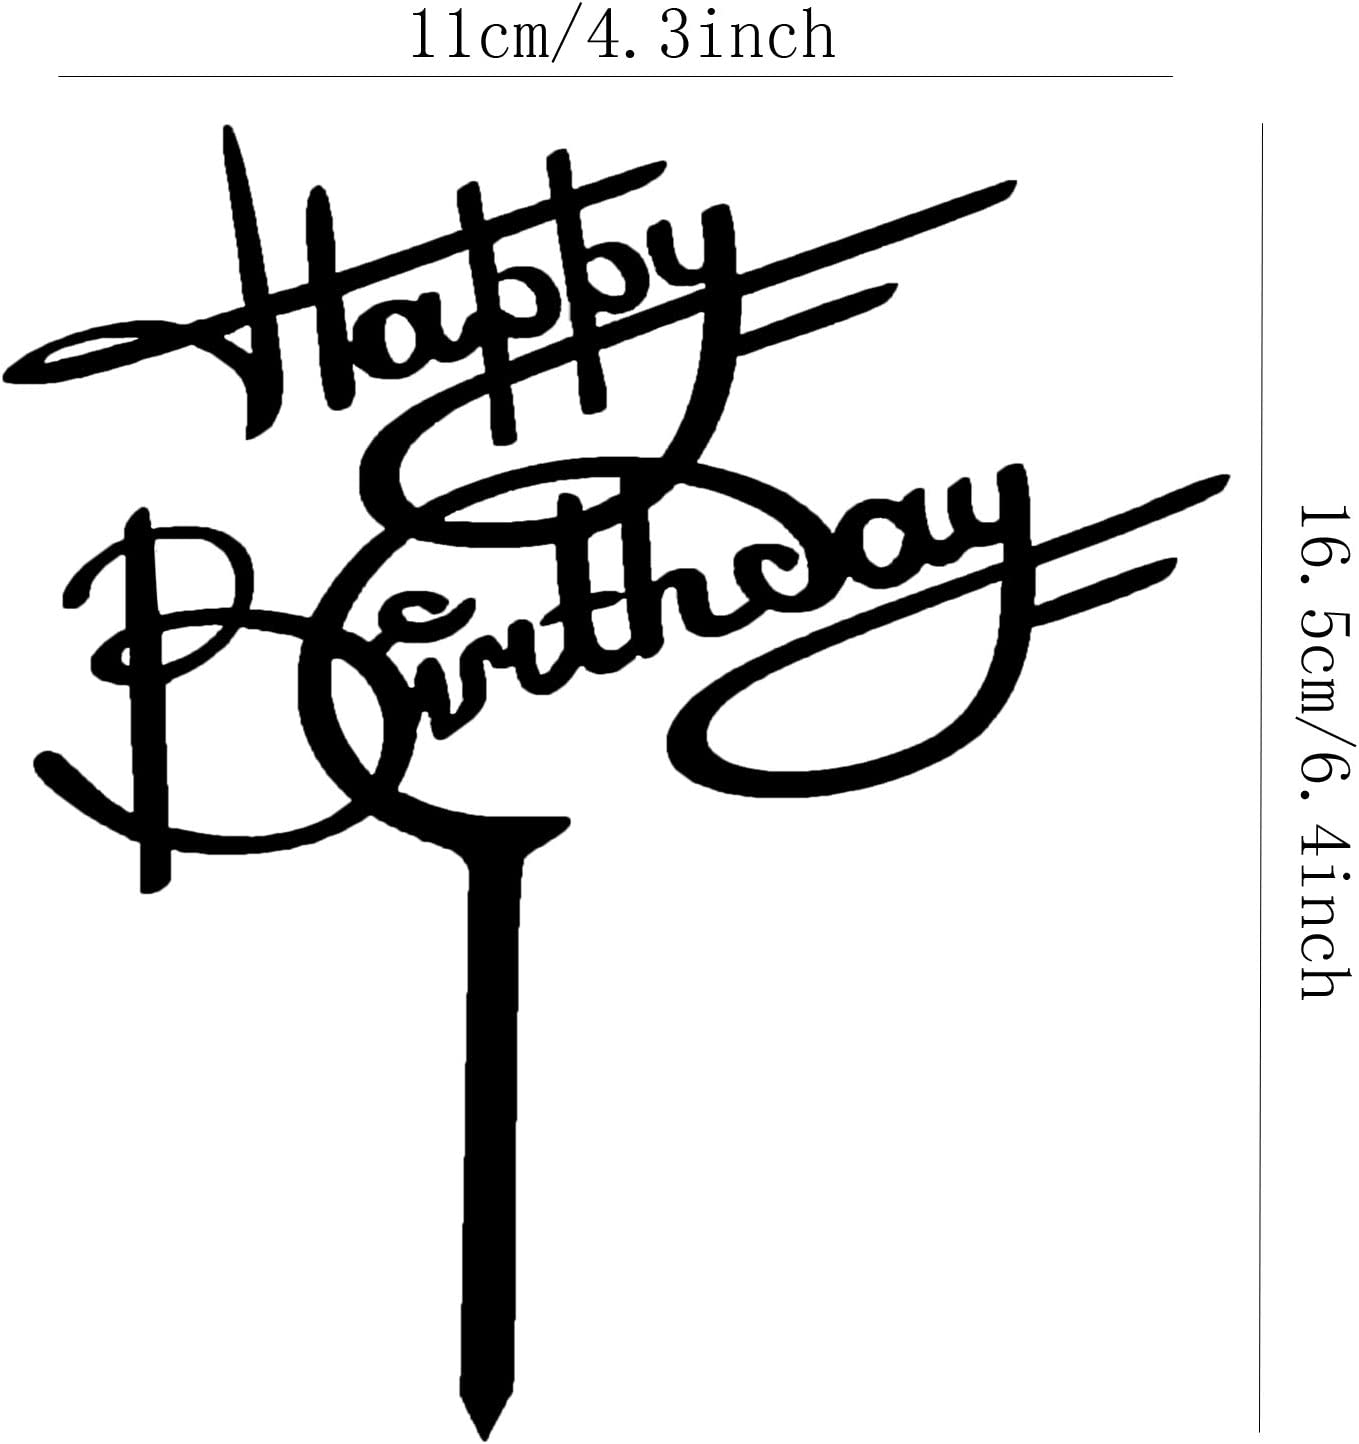 Happy Birthday Cake Topper Black Creative Cake Supplies Party Essential Decorations Birthday Party Decoration